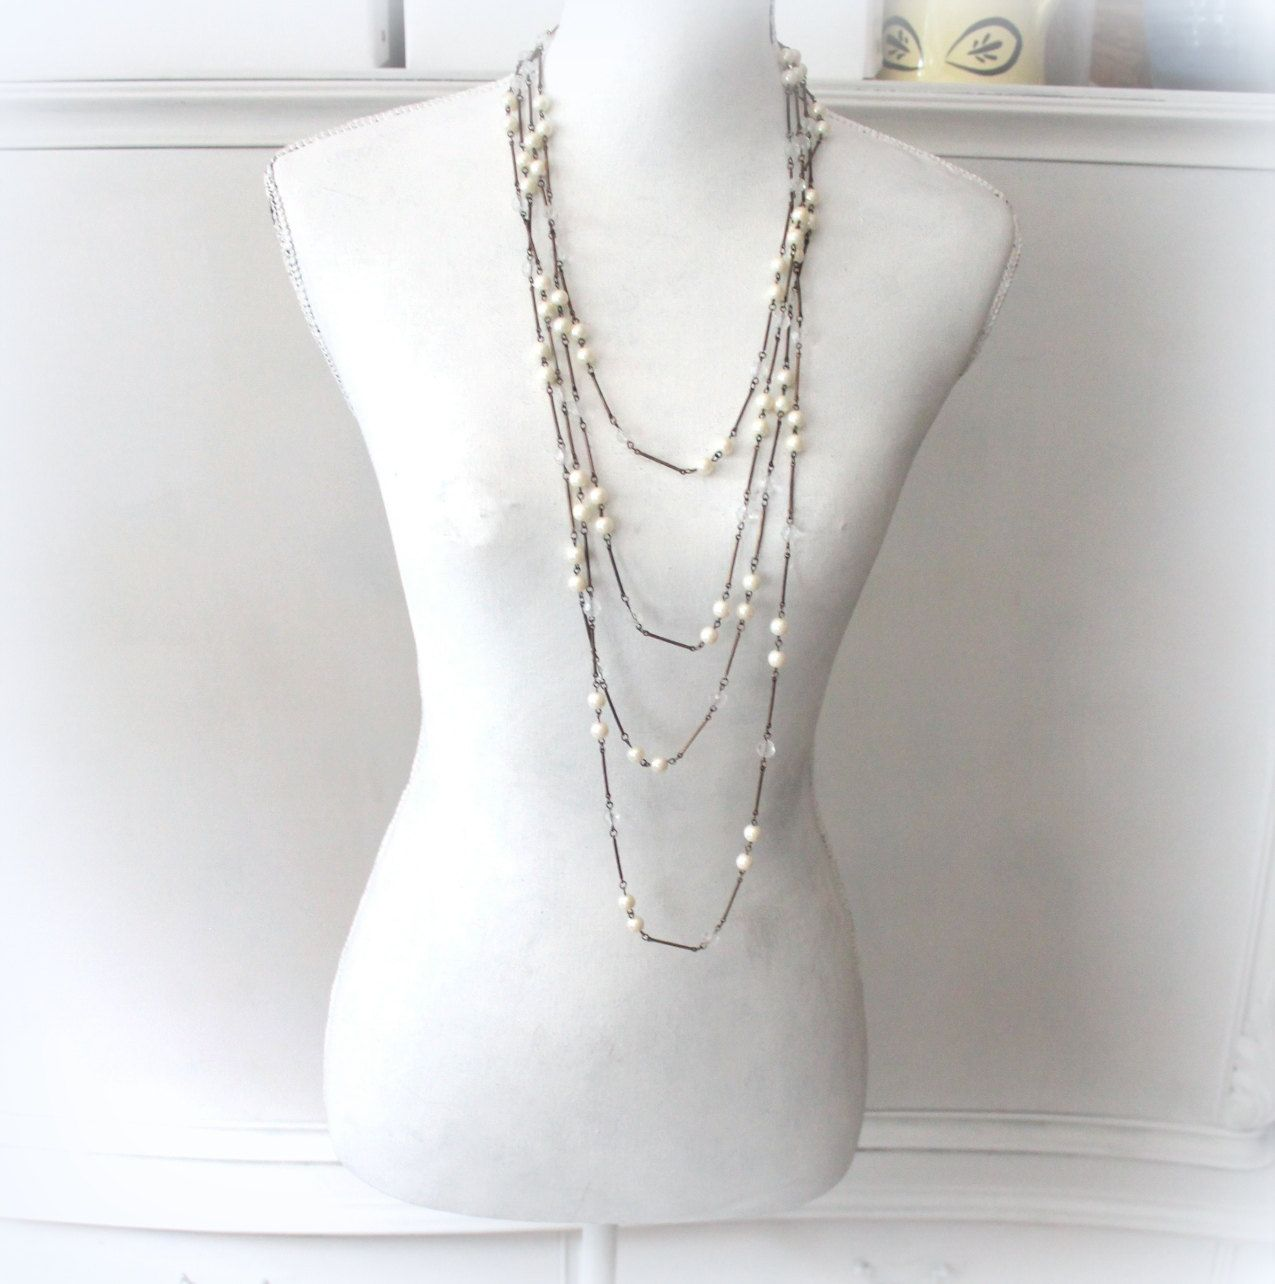 multi strand necklace- old pearl necklace- long chic vintage chains by Sweetlakevintage on Etsy